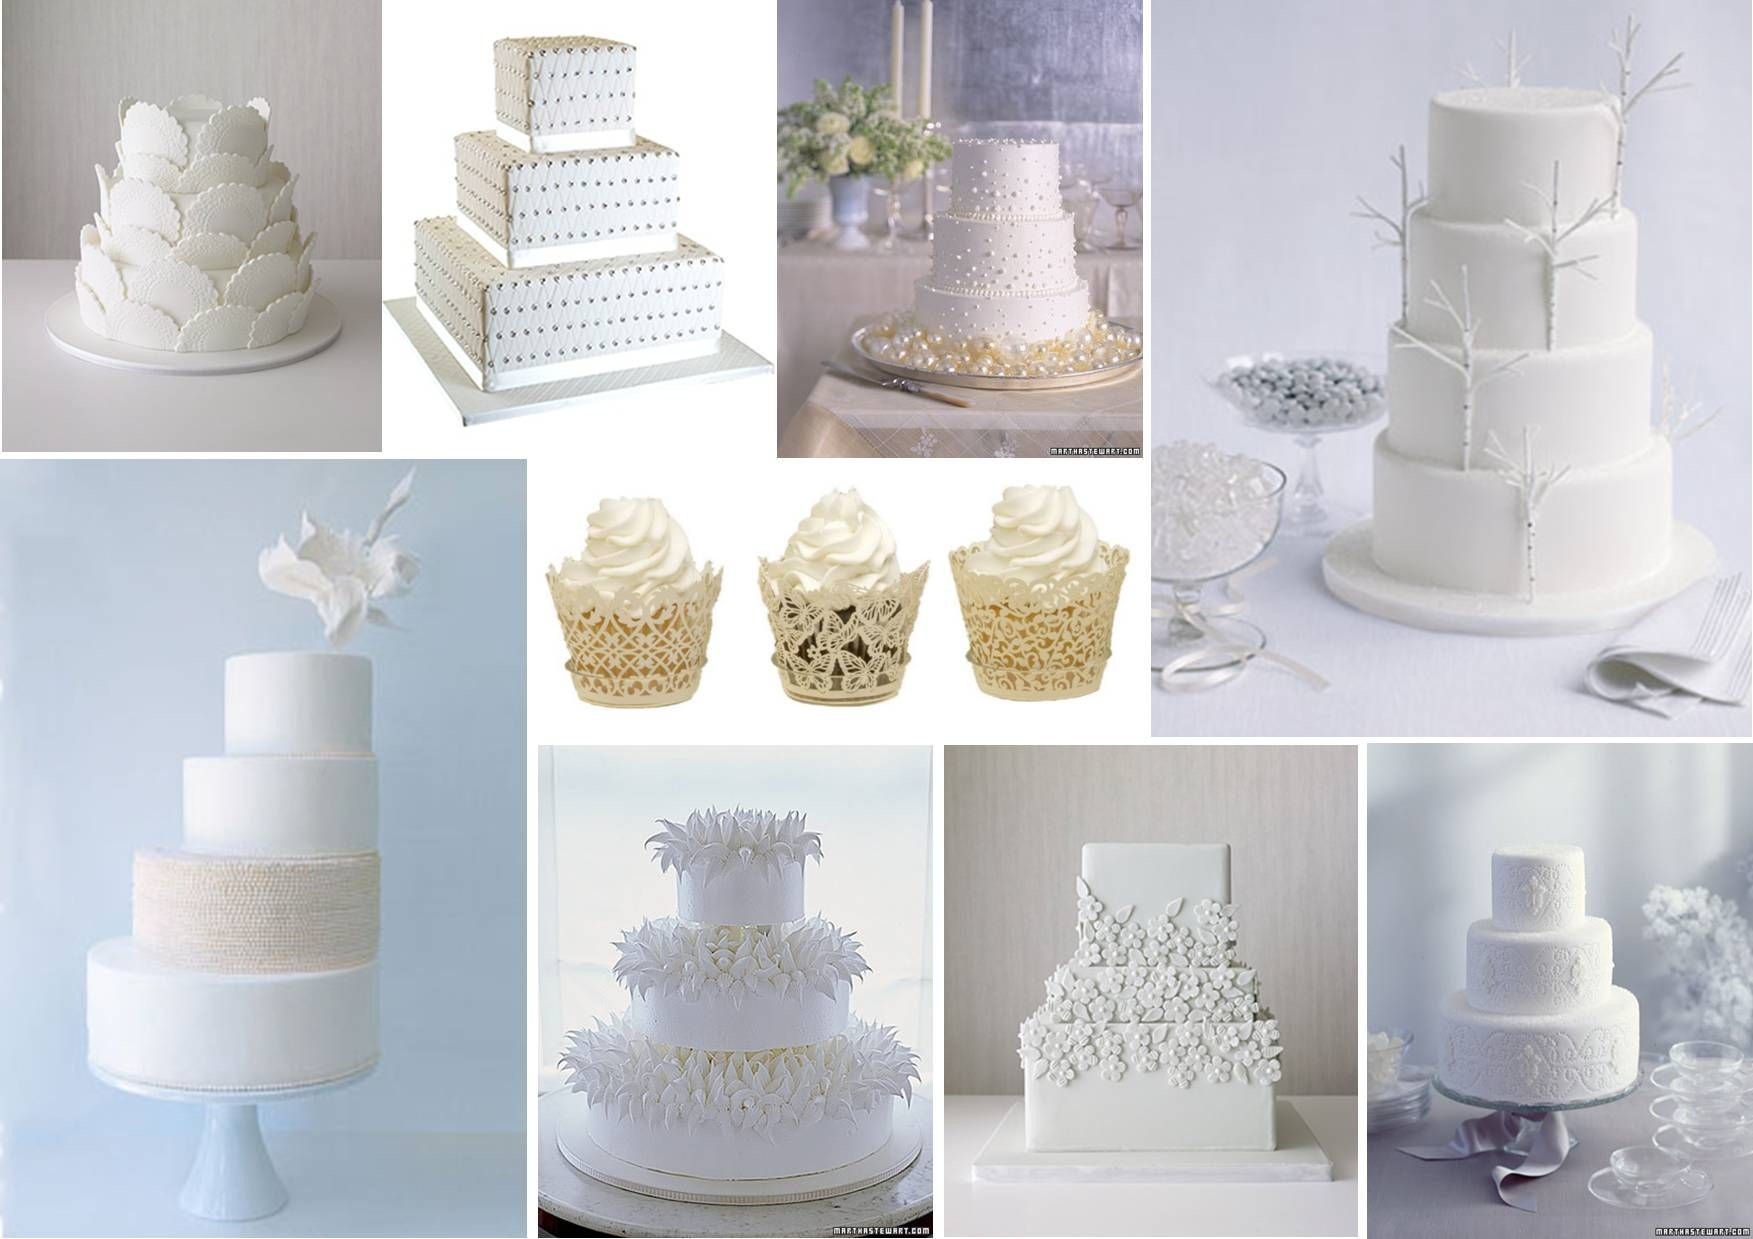 Cake or cupcakes so many options for a white wedding winter